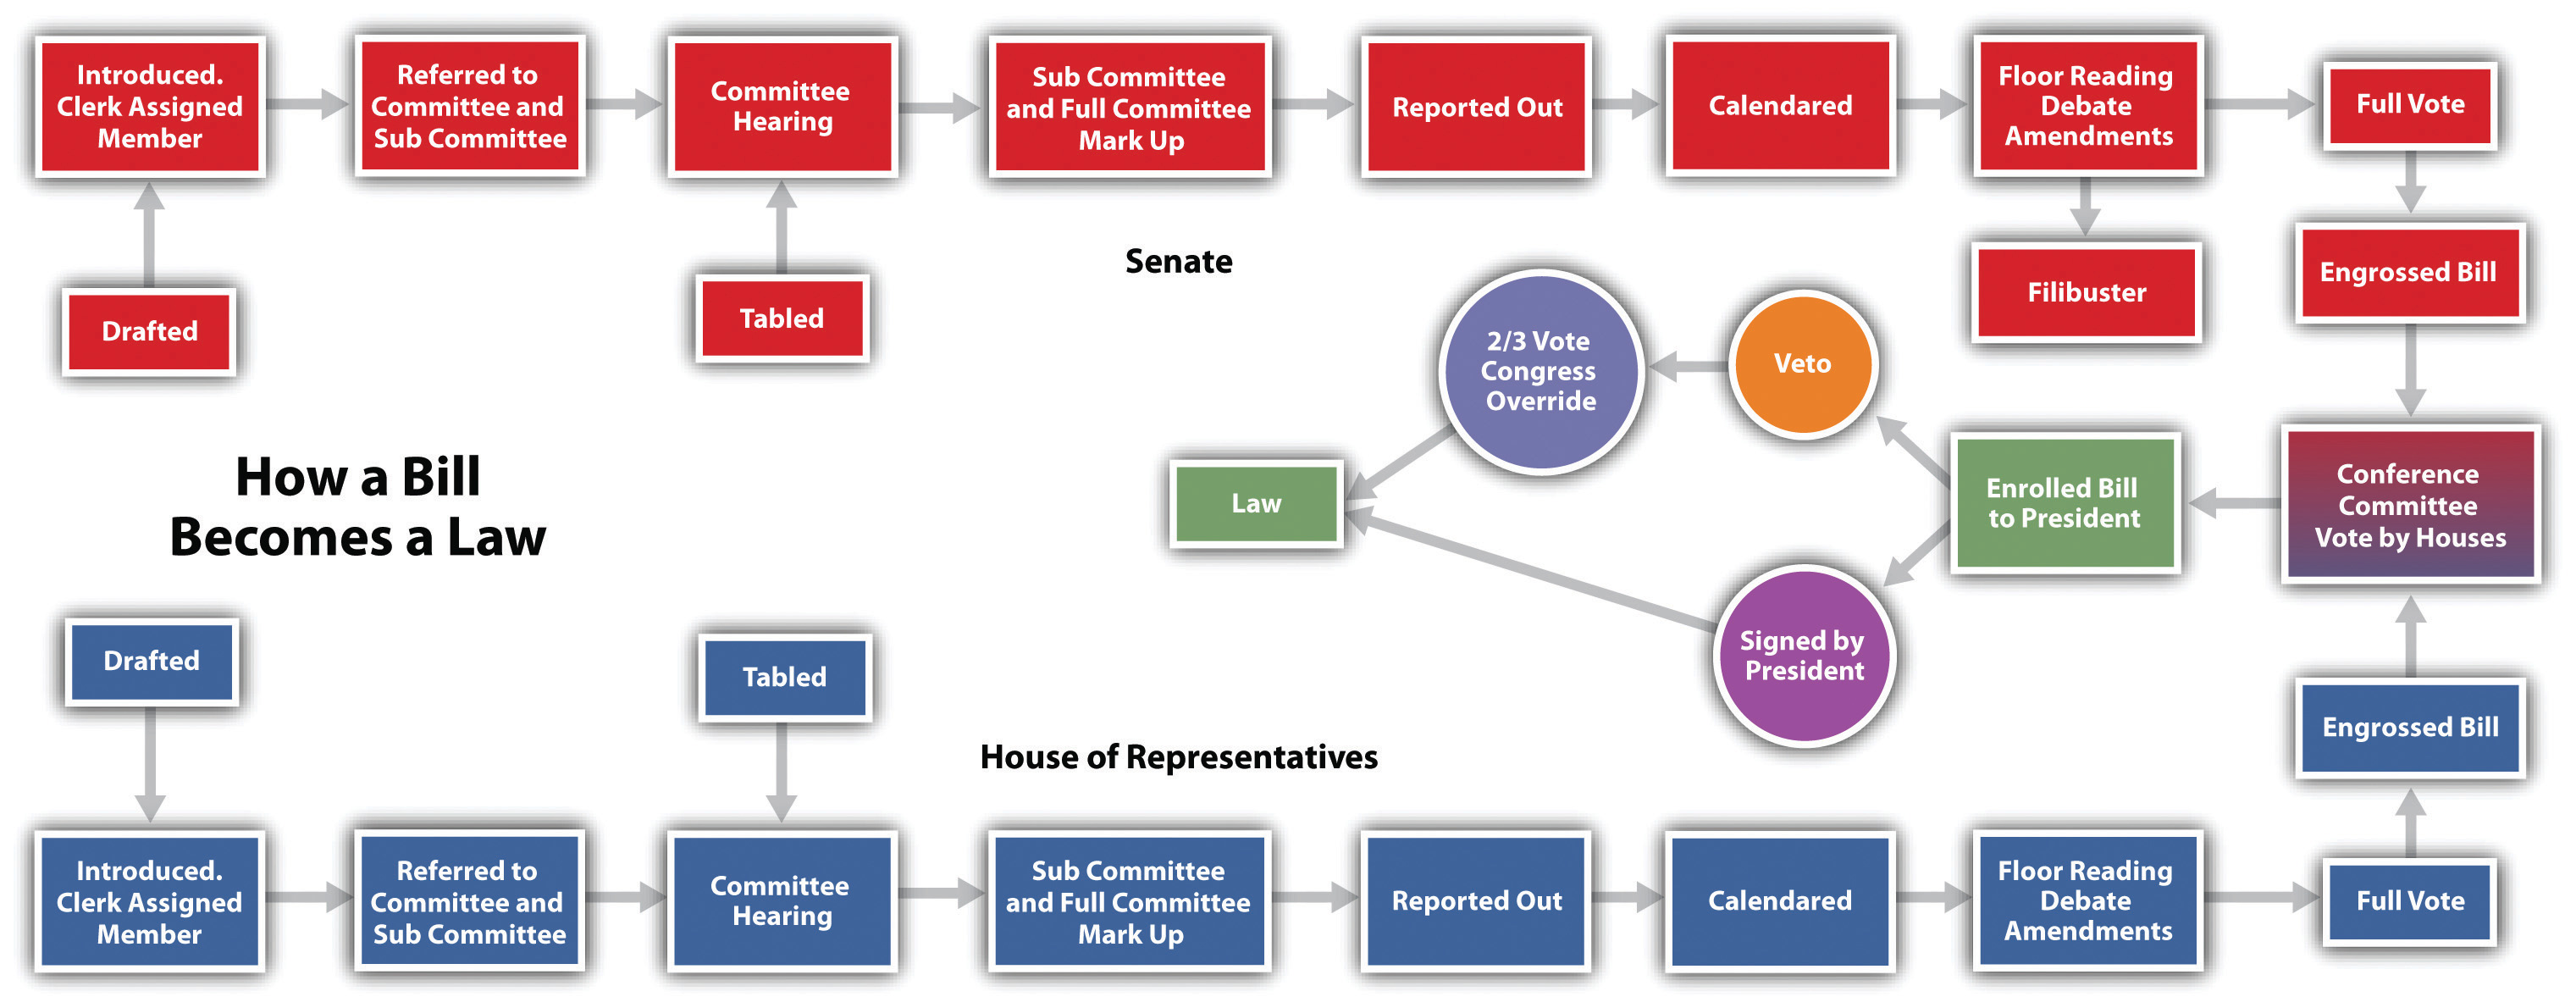 Comprehensive Immigration Reform Tracking The Status Of